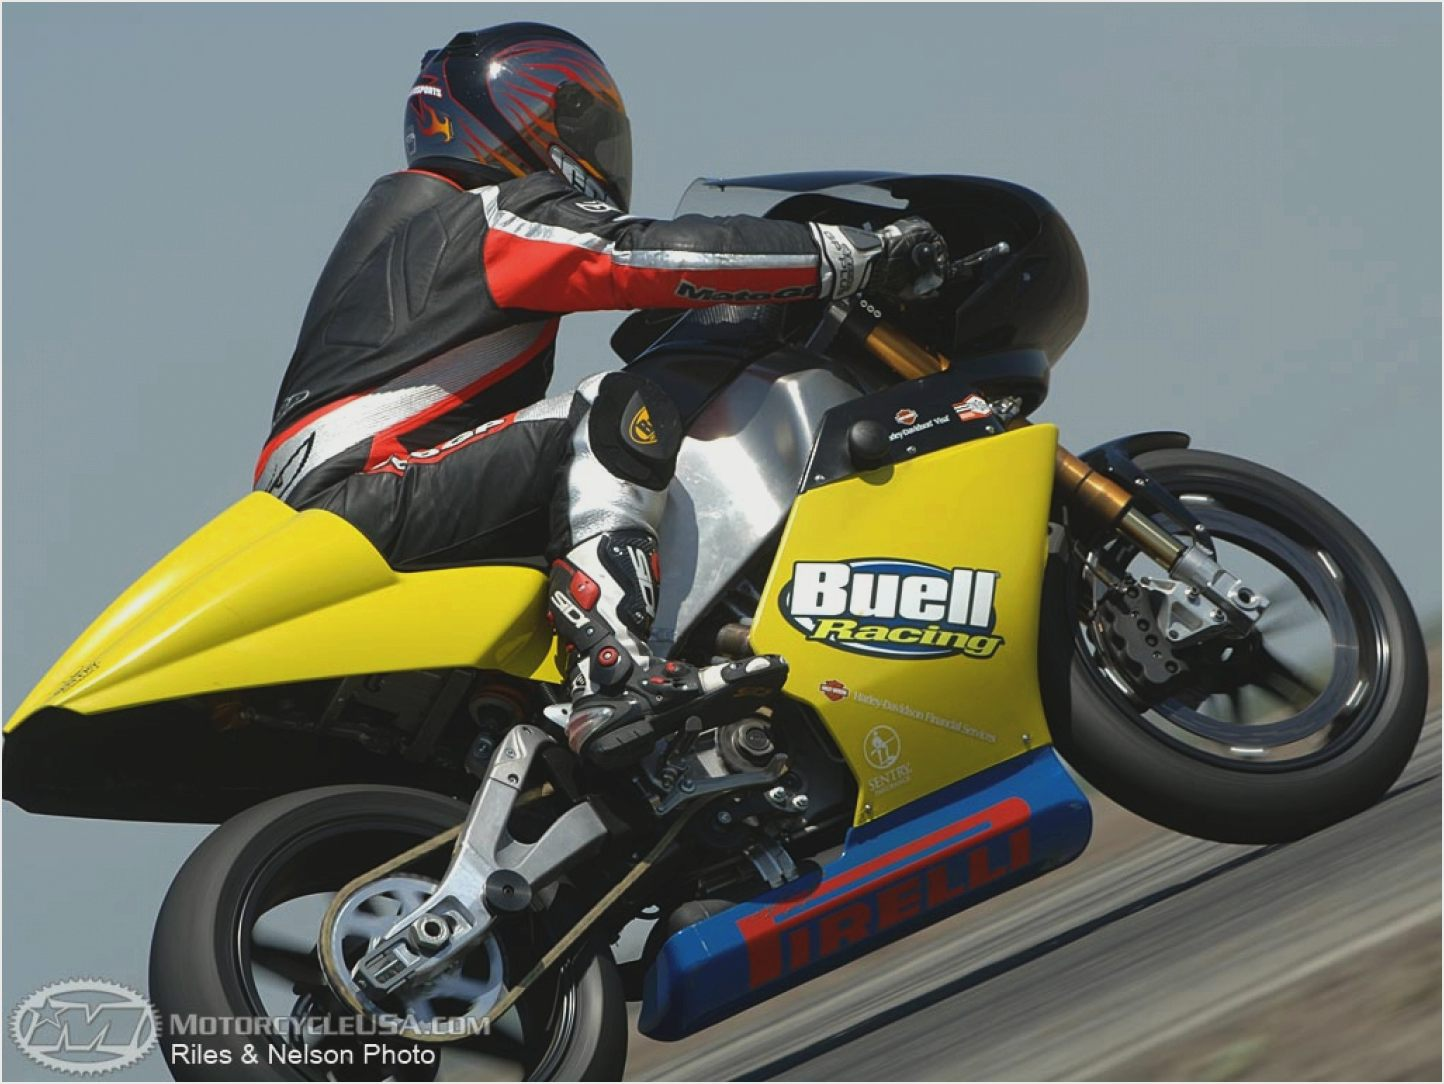 Buell XBRR 2006 images #68169